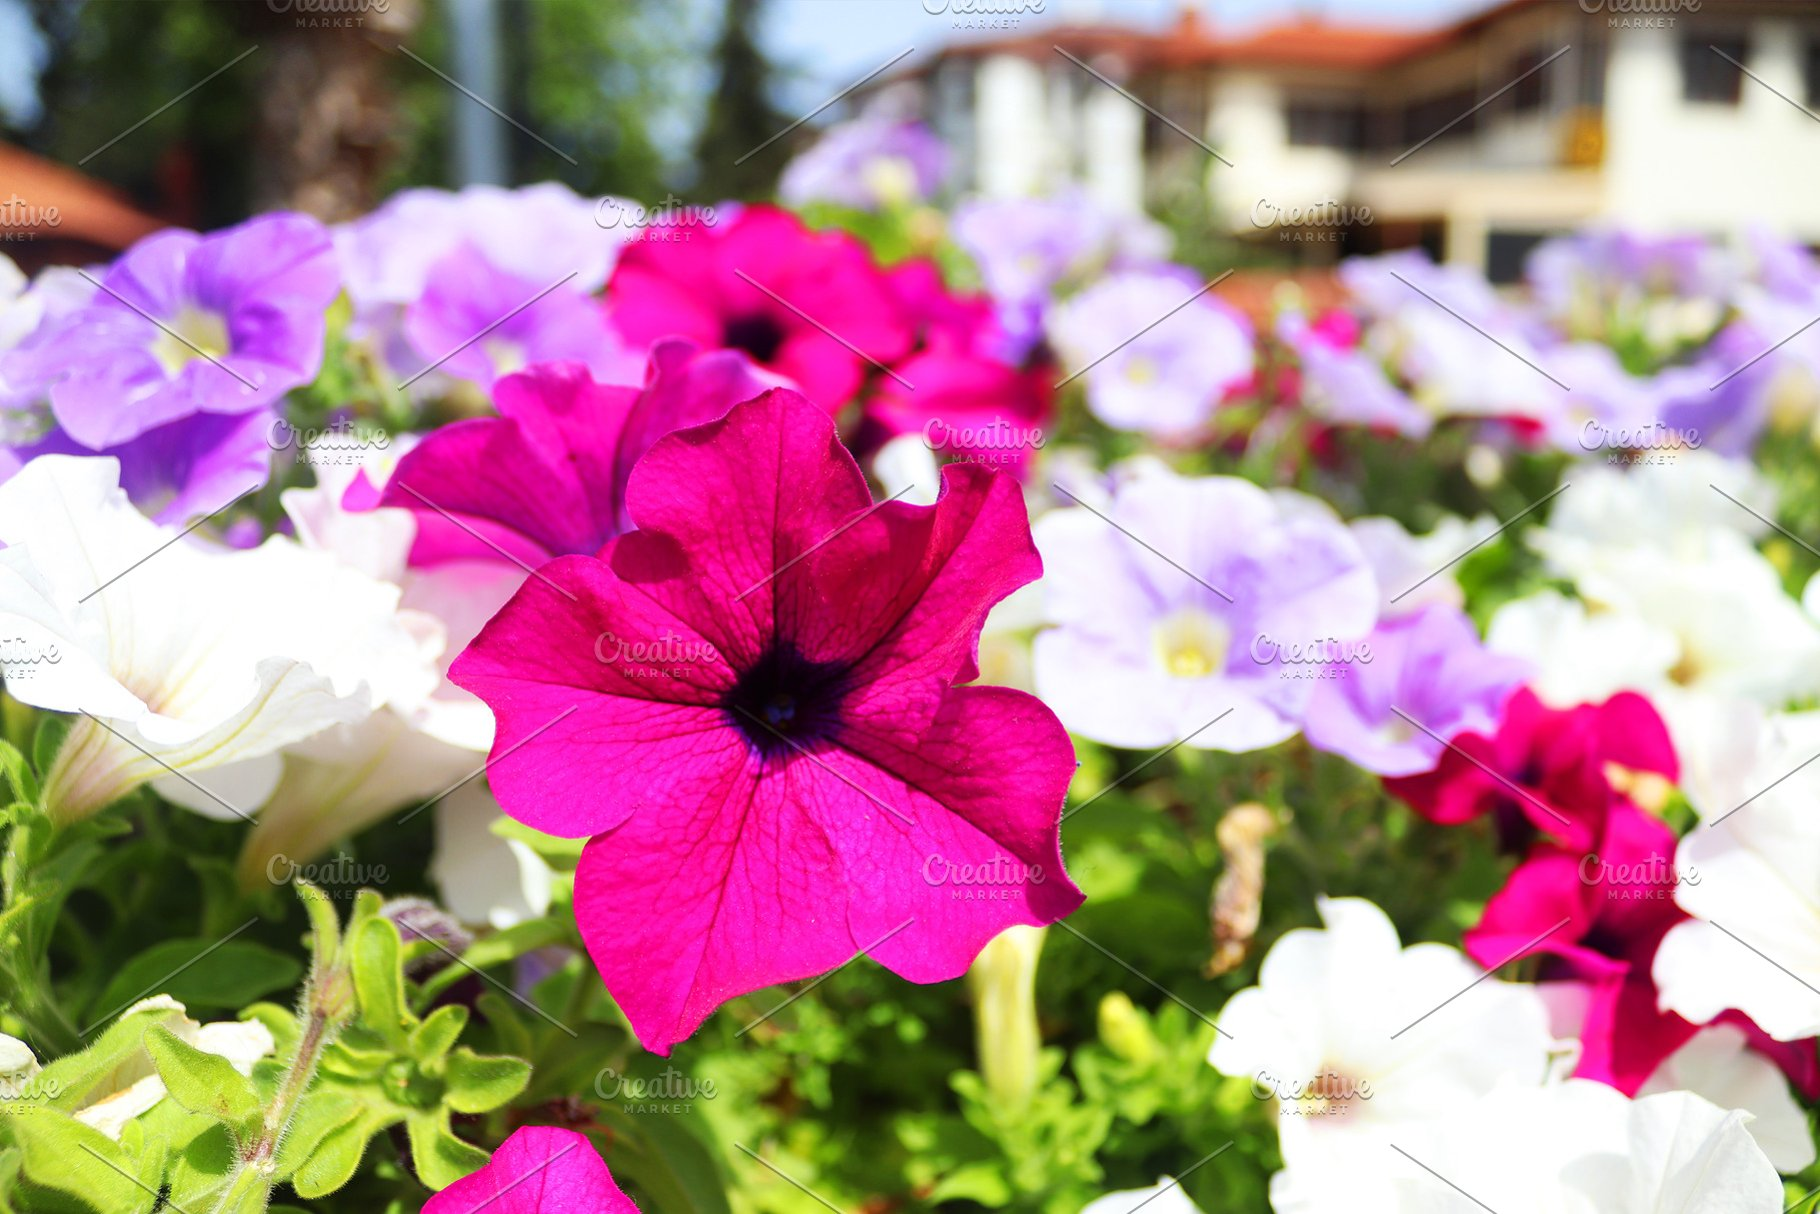 Beautiful Petunia Flowers Wallpaper High Quality Nature Stock